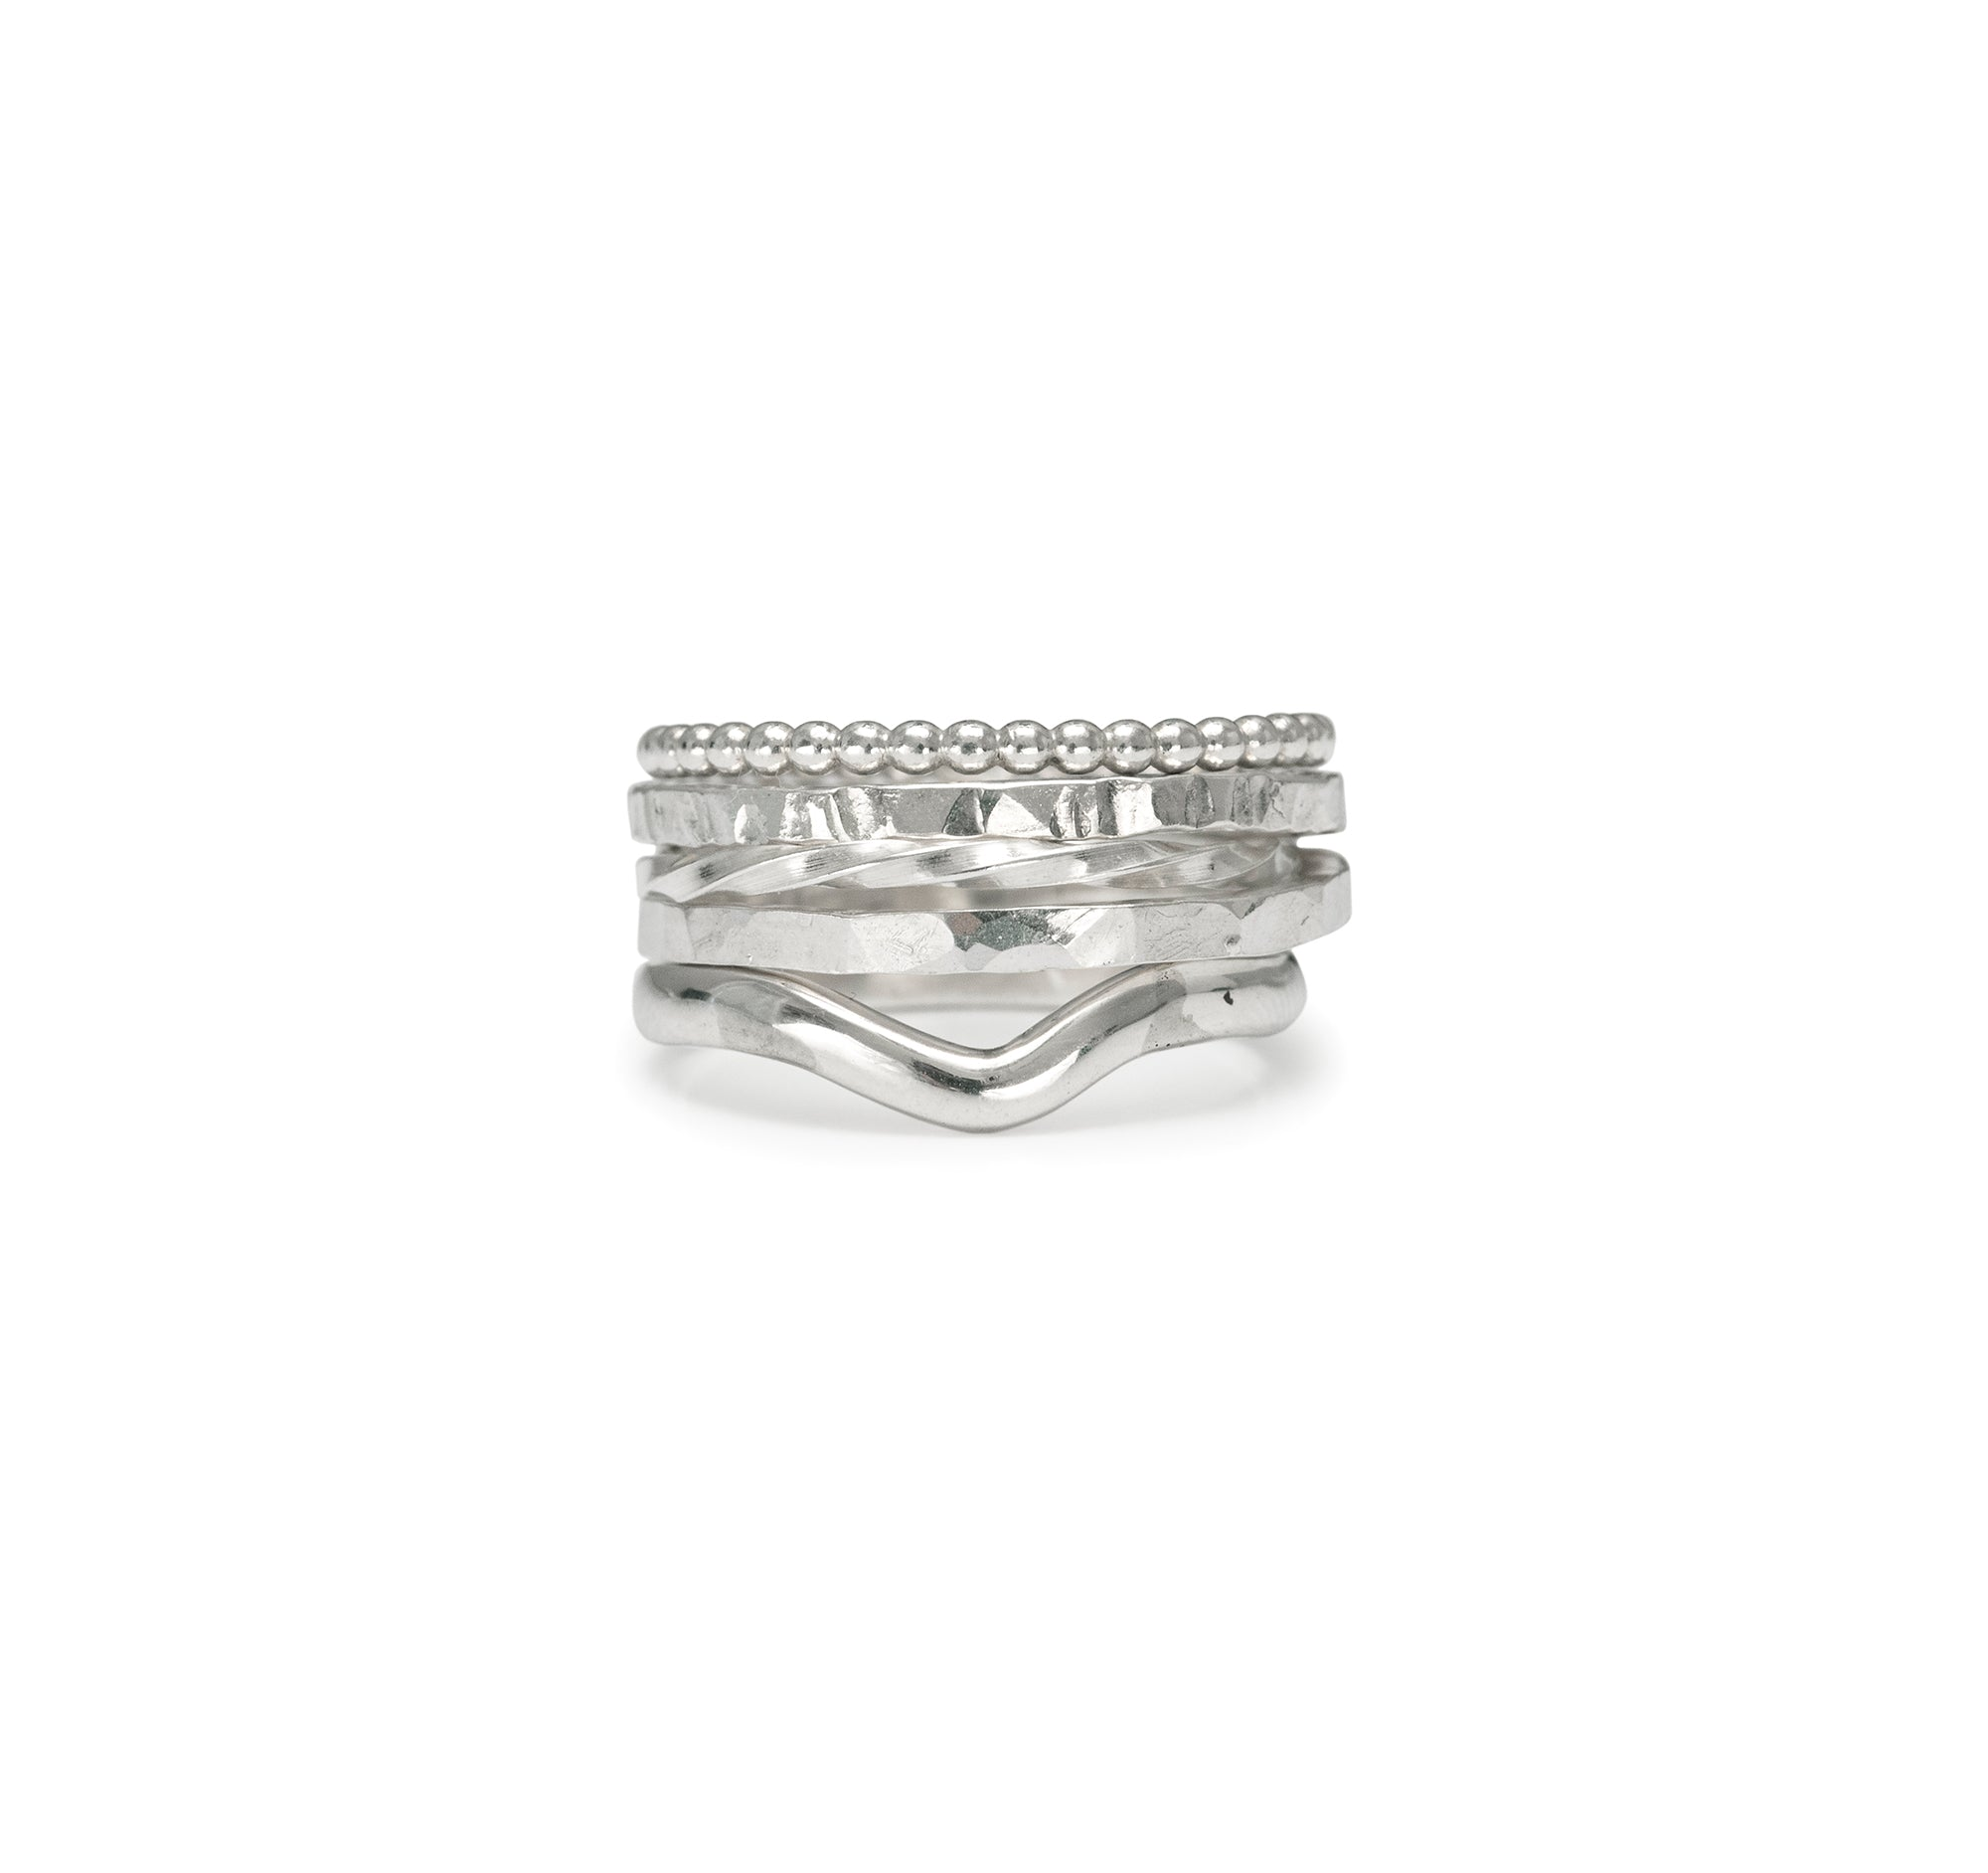 The Twisted Stacking Ring